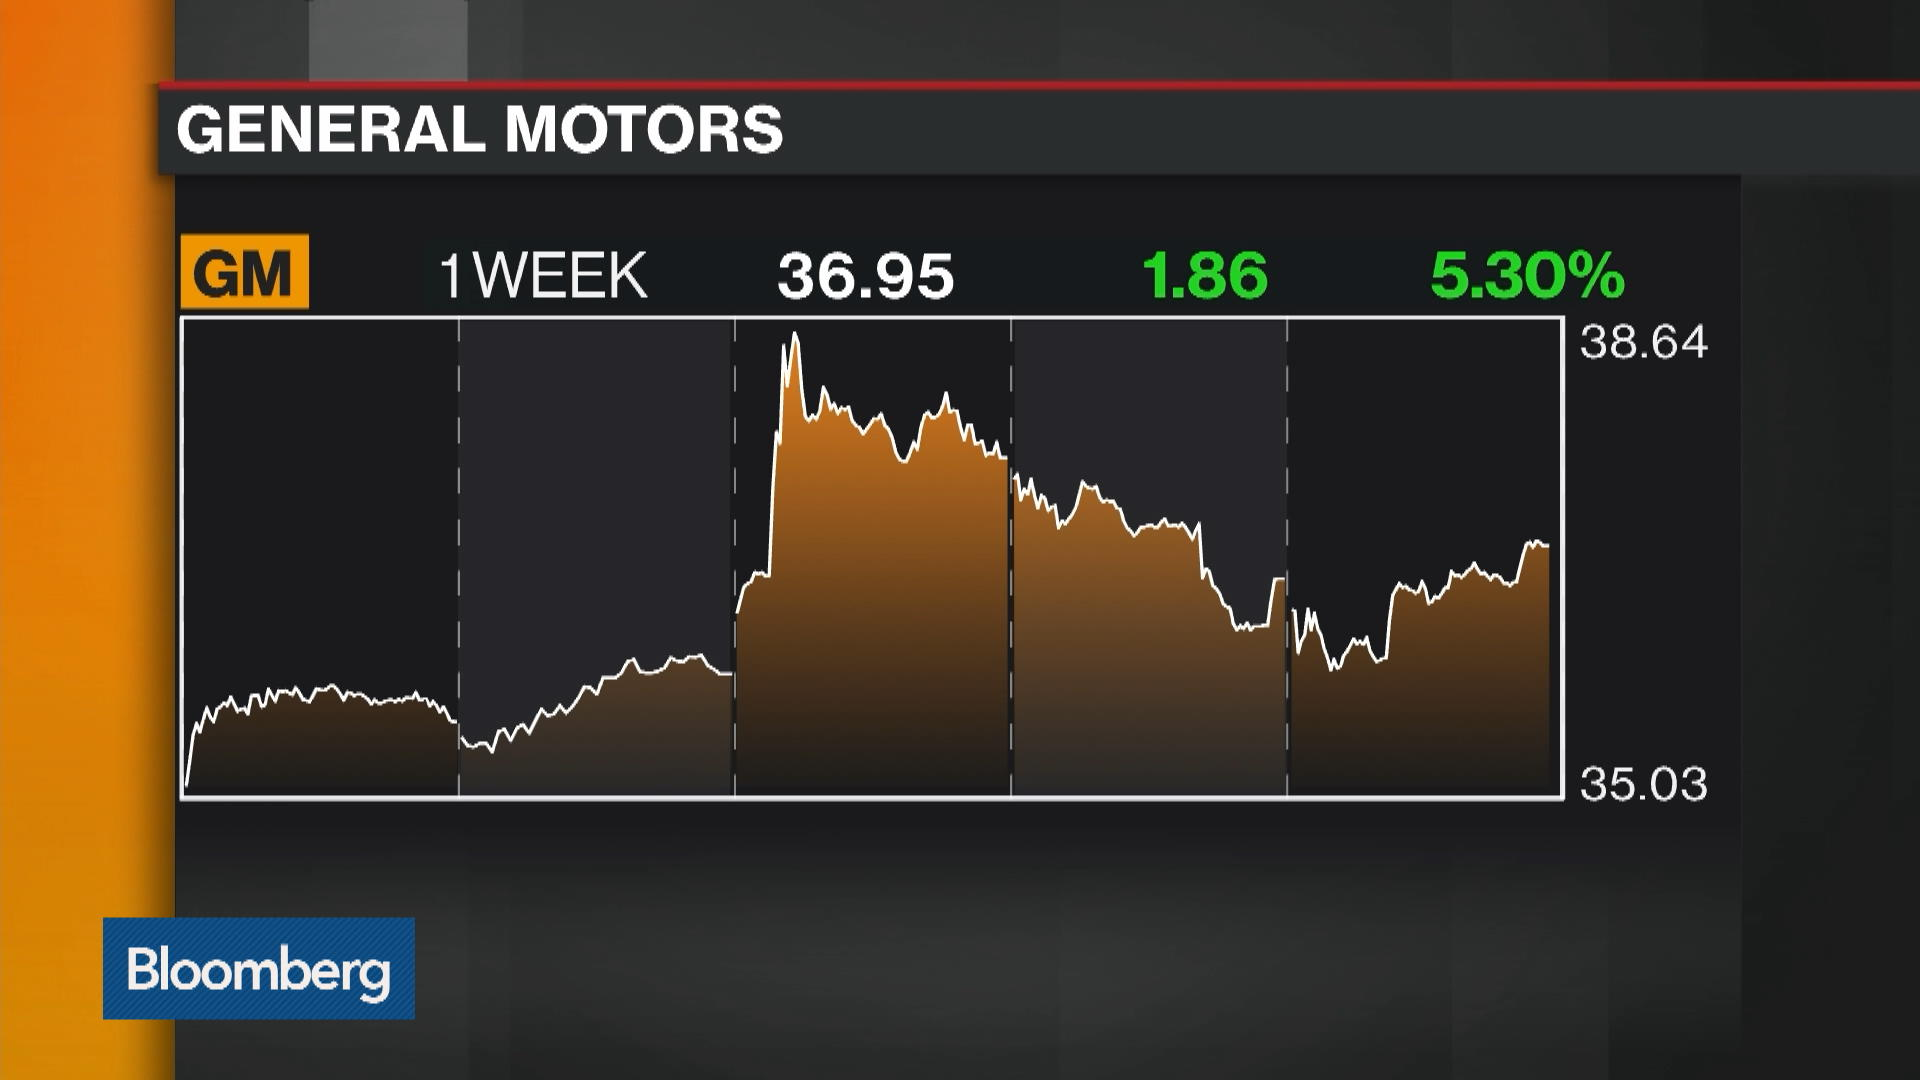 gm new york stock quote general motors co bloomberg markets